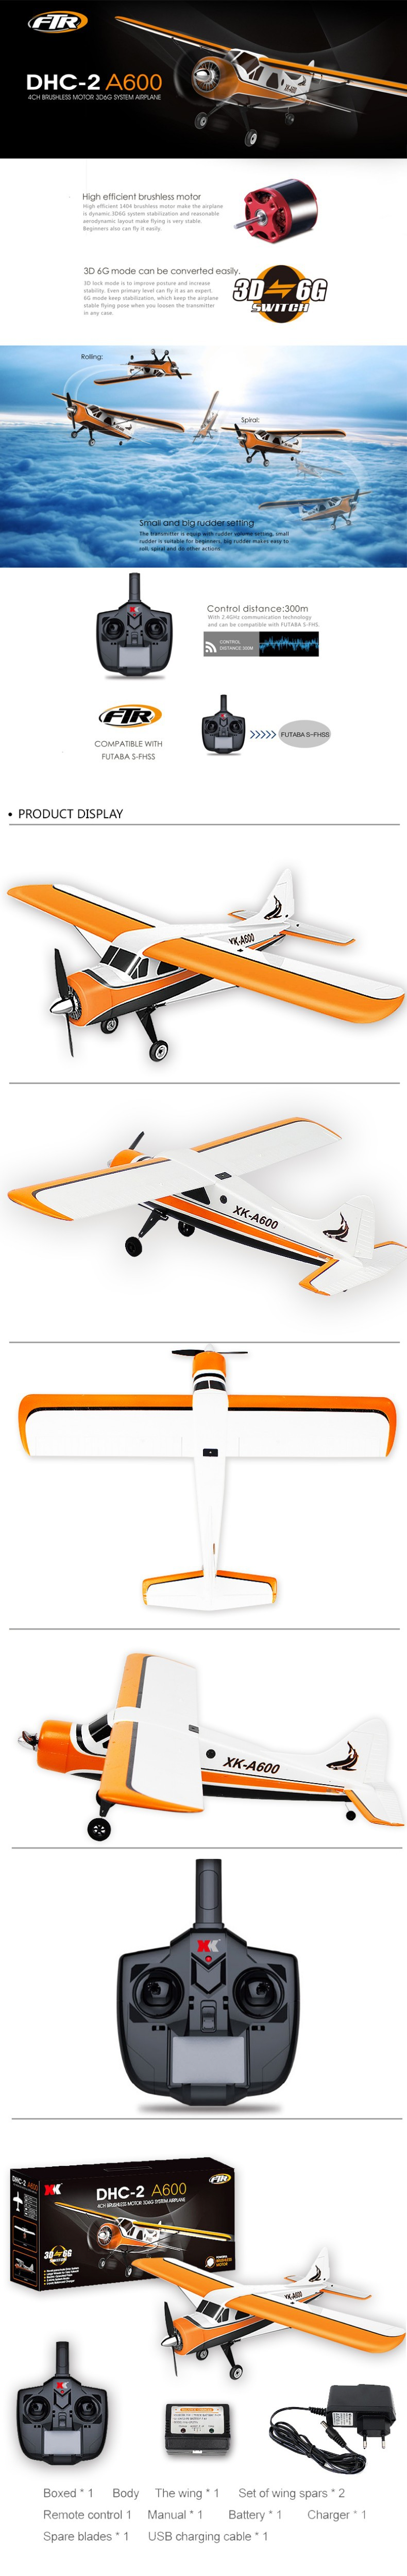 XK DHC-2 A600 -5CH-3D6G System Brushless -RC Airplane- Compatible Futaba -RTF-DISPLAY-